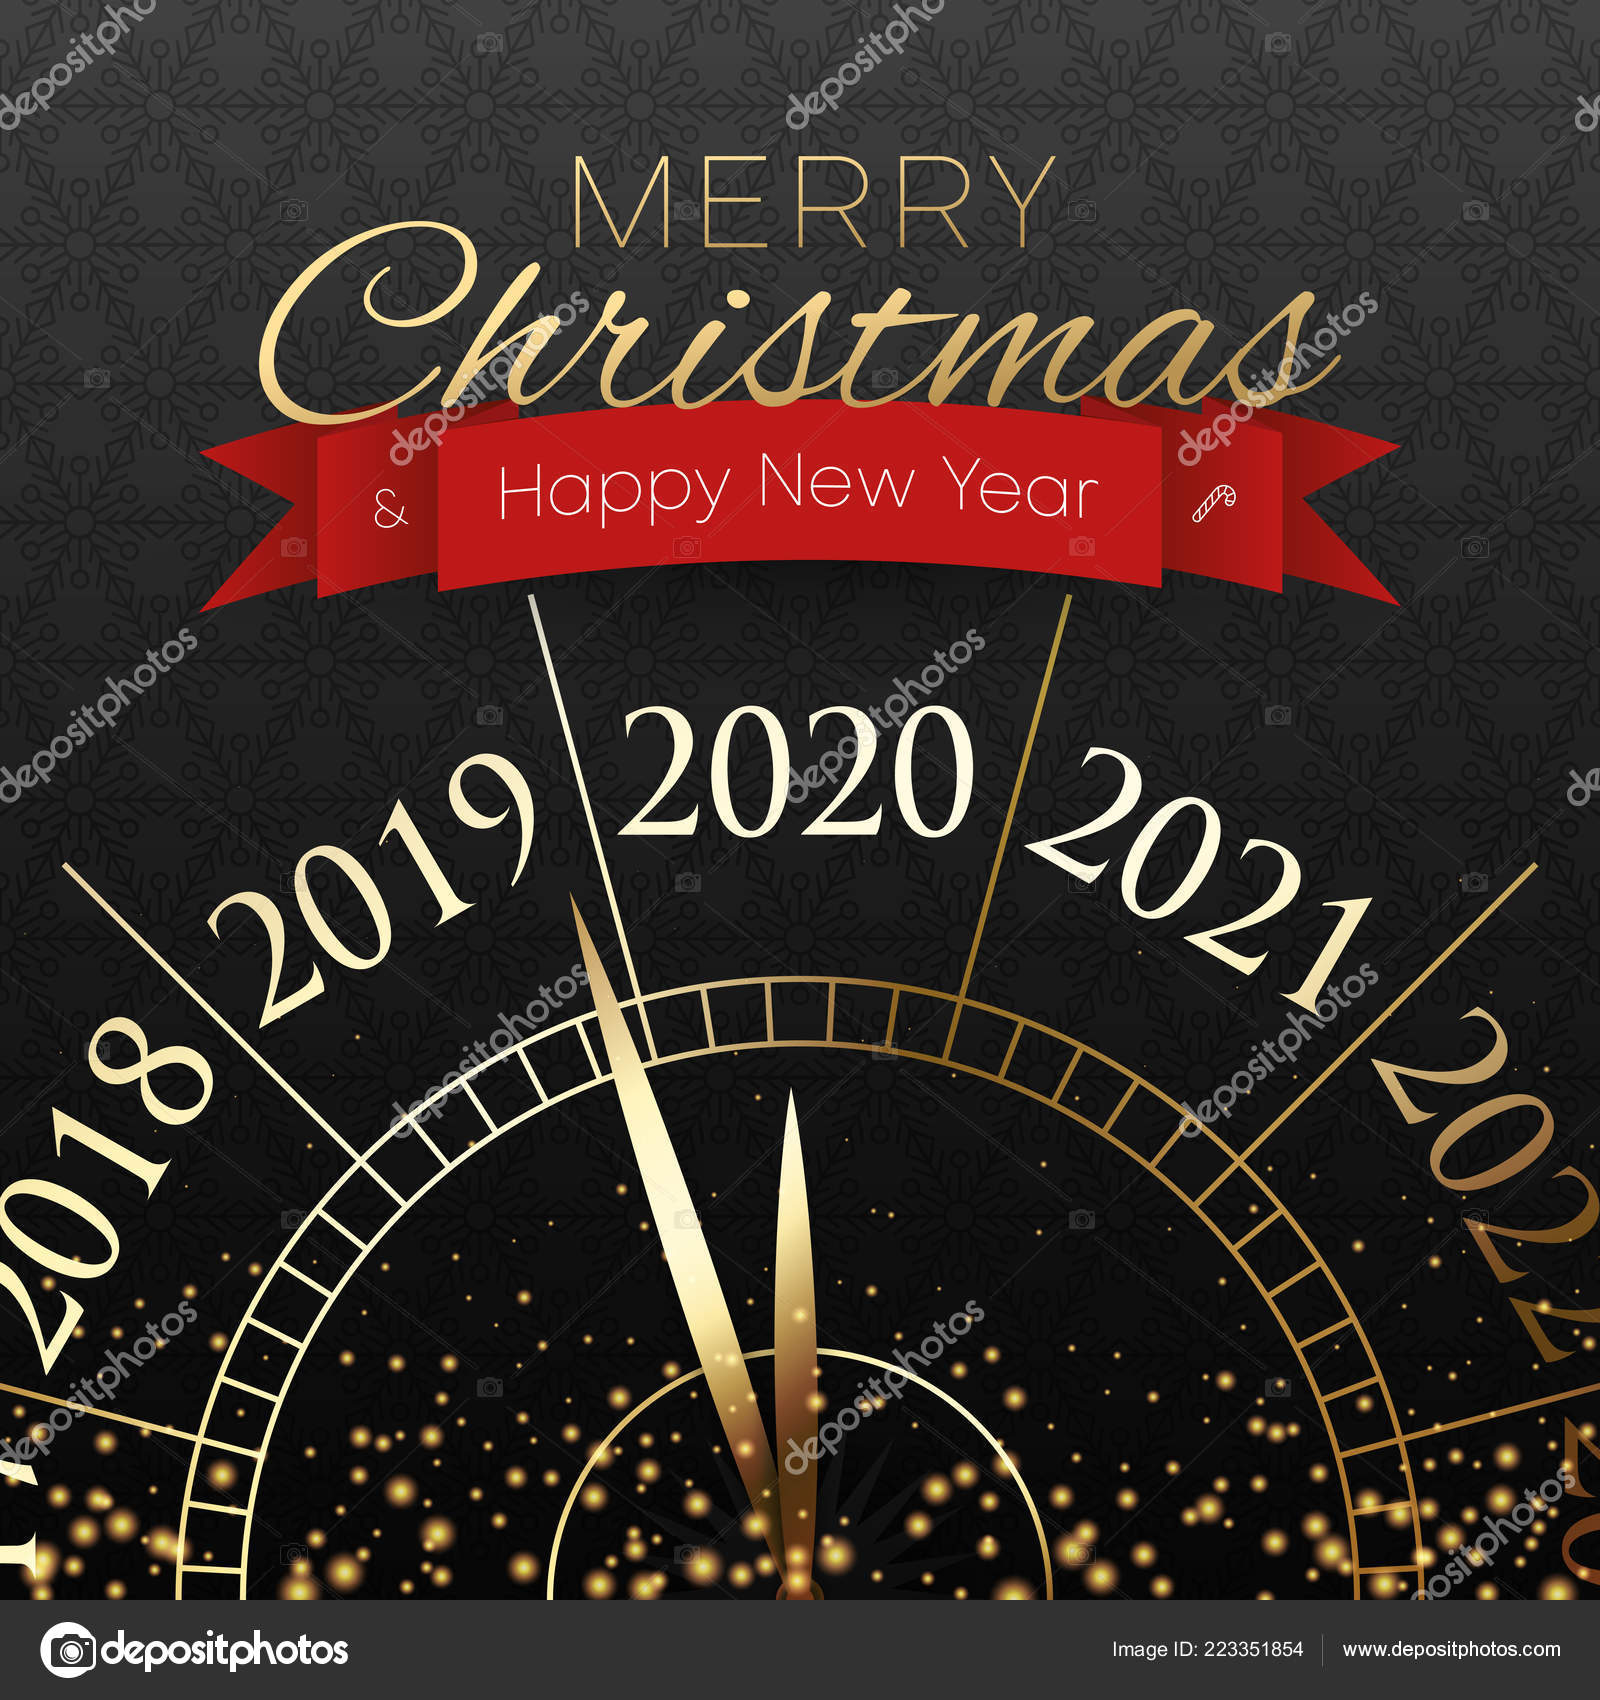 Merry Christmas Images 2020.Merry Christmas And Happy New Year 2020 Card With Clock